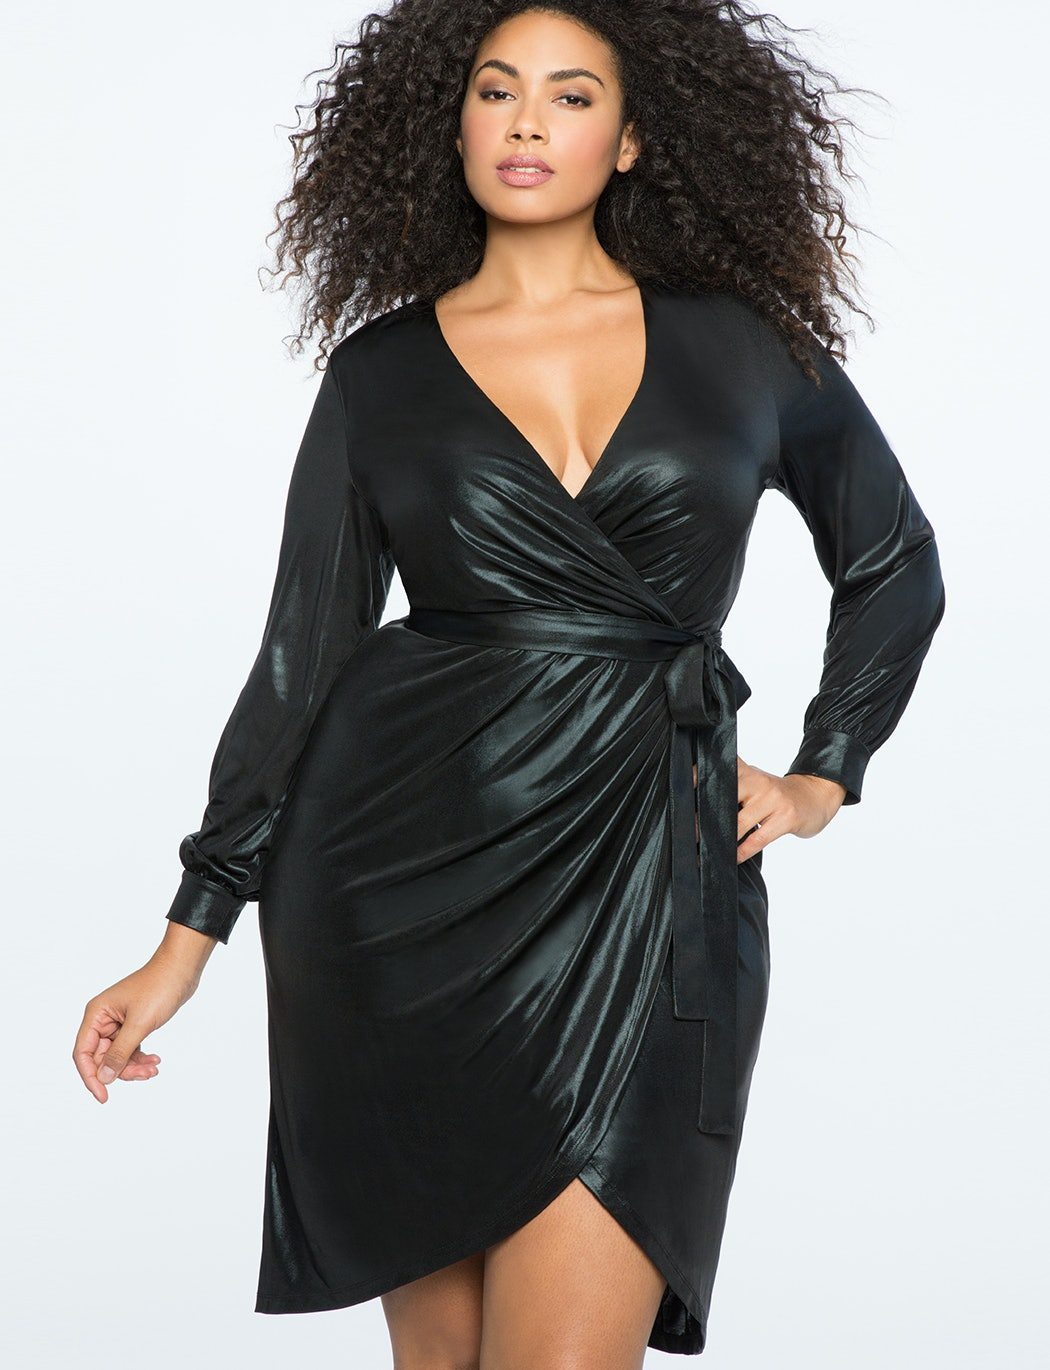 5b0b09d32c 50 Plus Size Holiday Dresses That Deserve A Spot In Your Closet